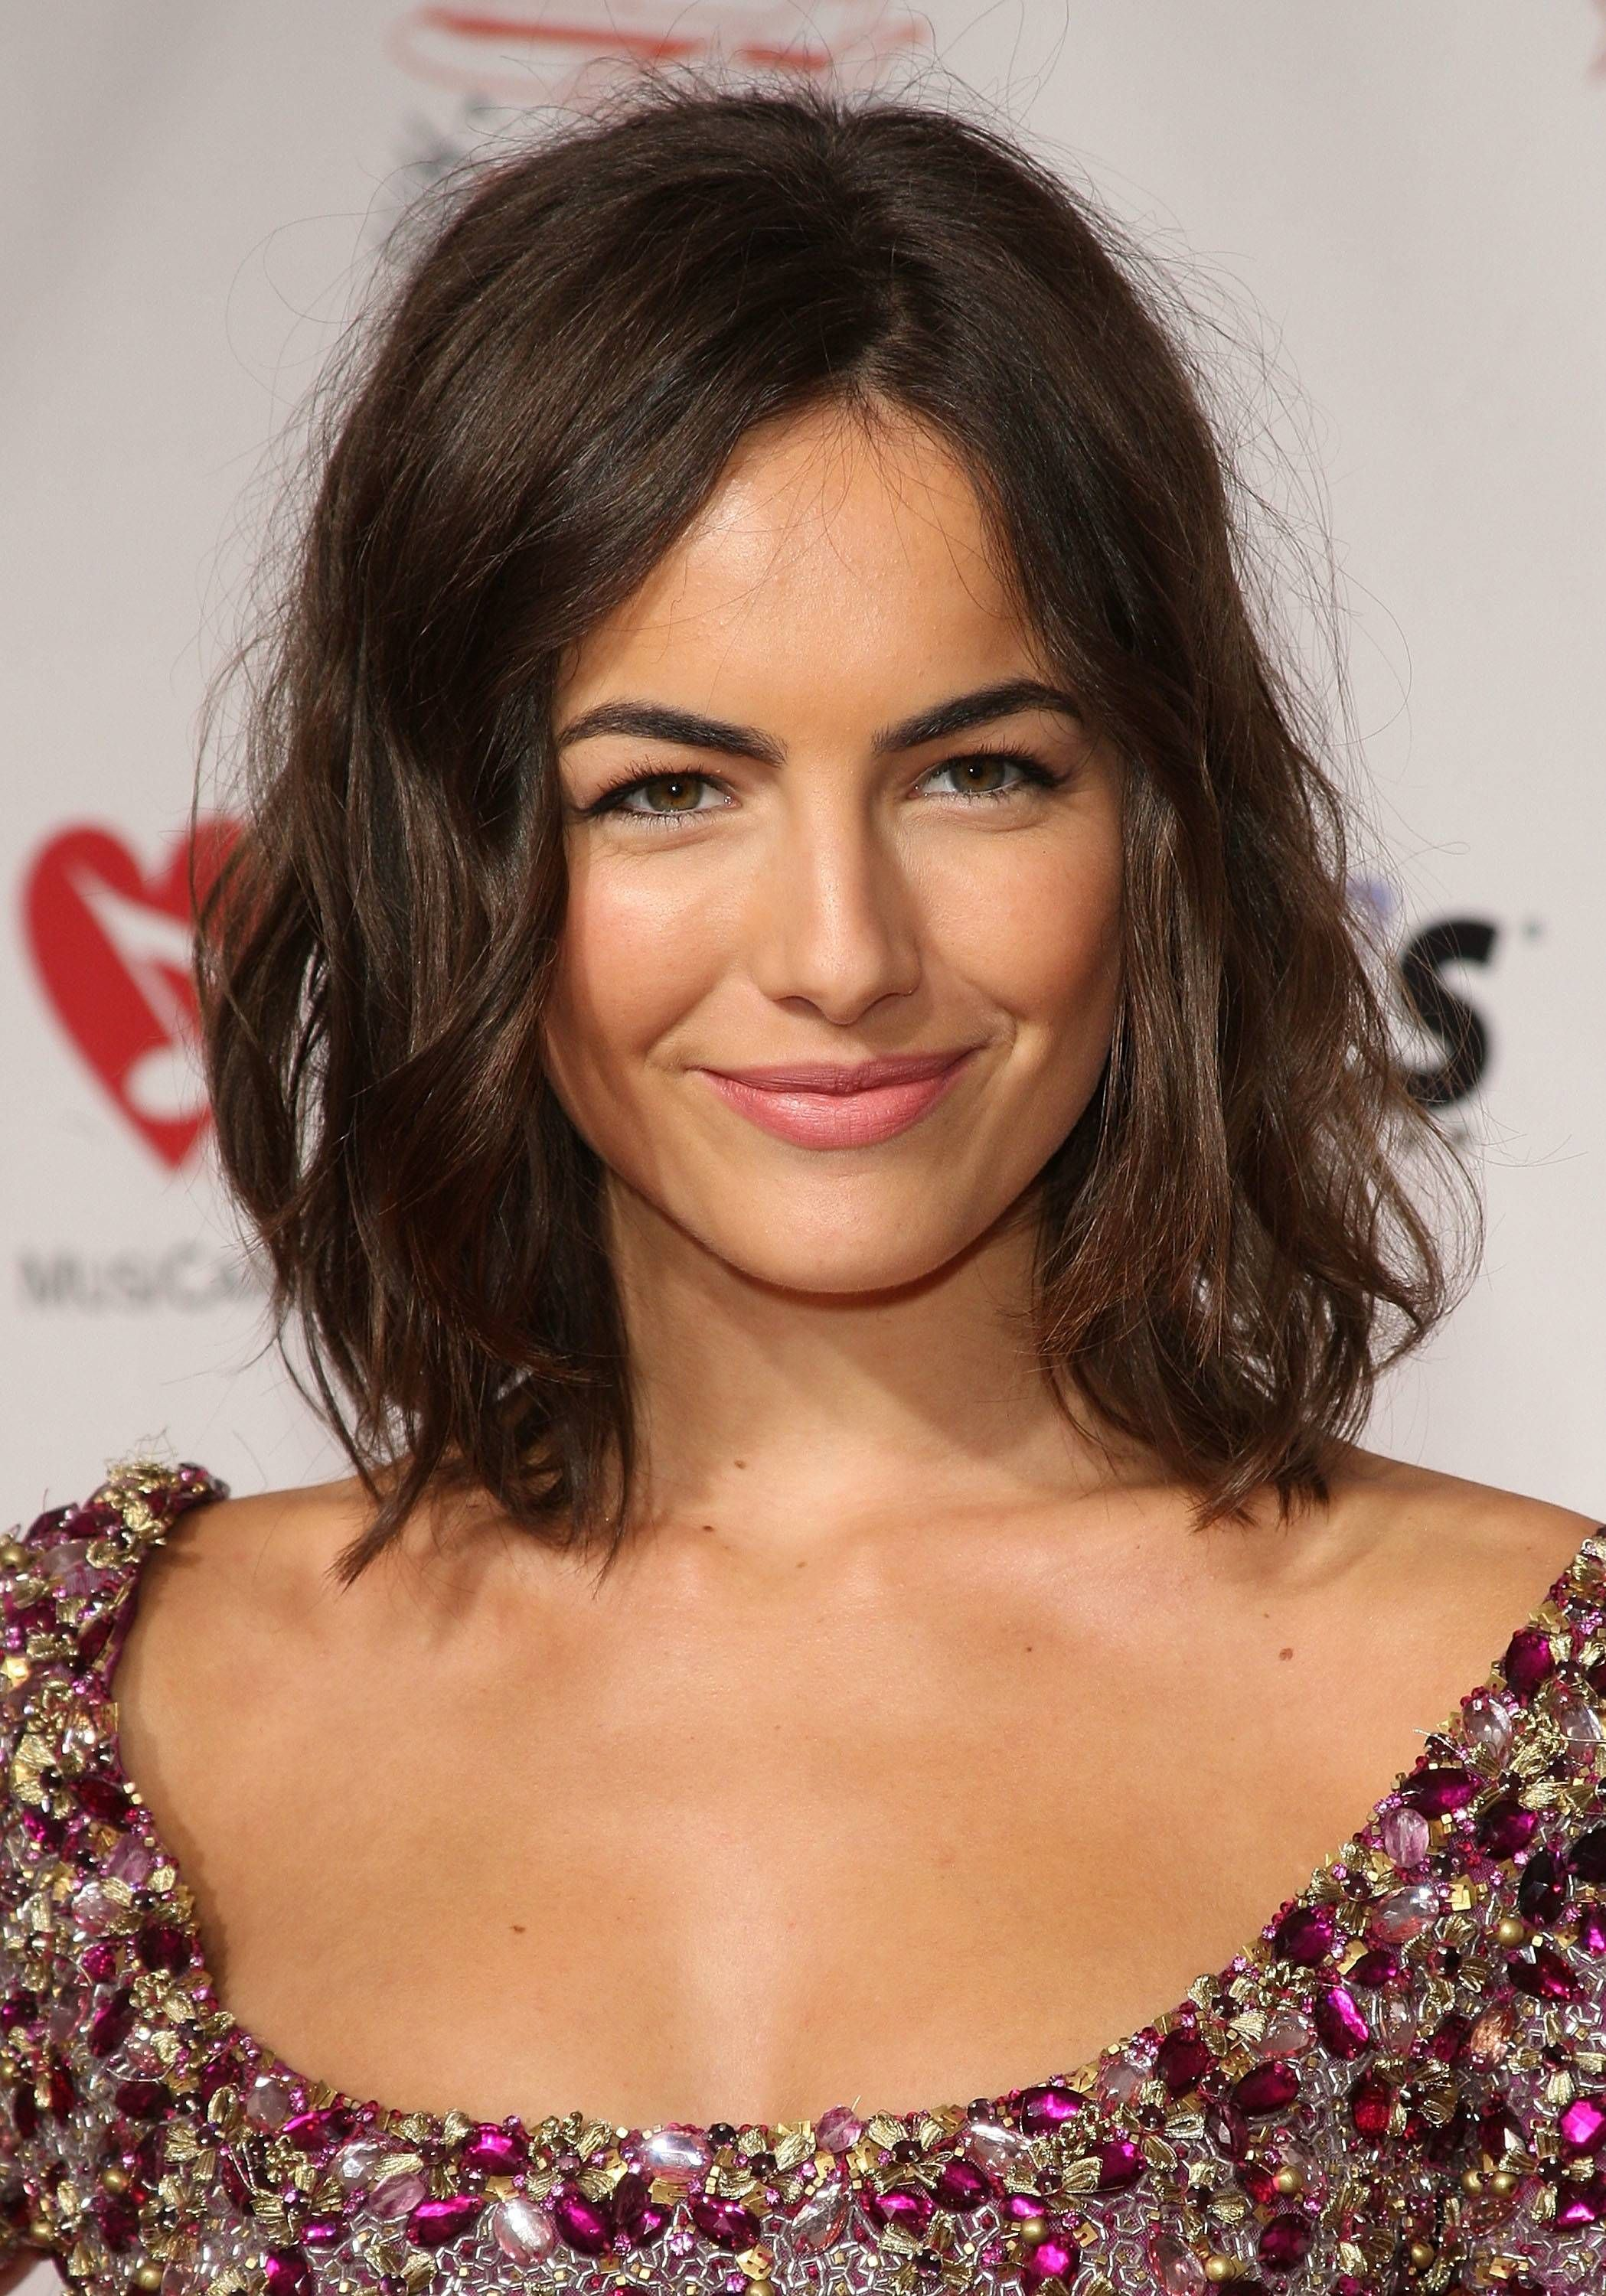 Hairstyles Fall 2015 Shorthairstylesfall2015  Short Wavy Hairstyles 2015  Decor